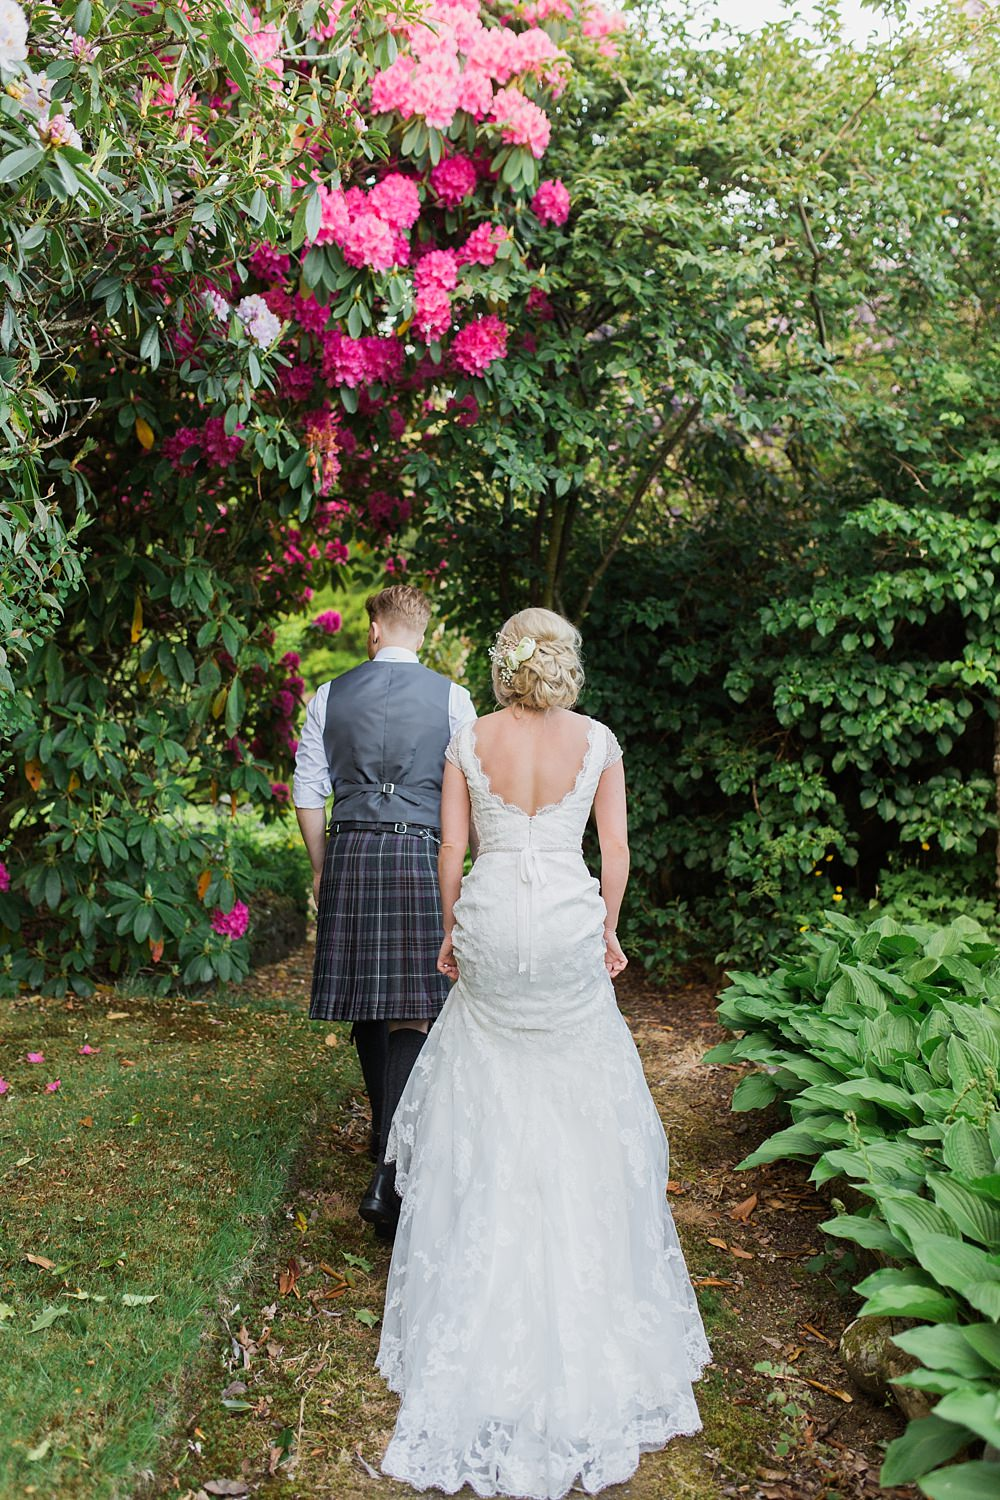 Fine Art Wedding Photographers,The Gibsons,elegant wedding photographers glasgow,fine art wedding,natural wedding photographers,romantic photographers Scotland,two wedding photographers scotland,wedding photographers scotland,wedding roman camp,